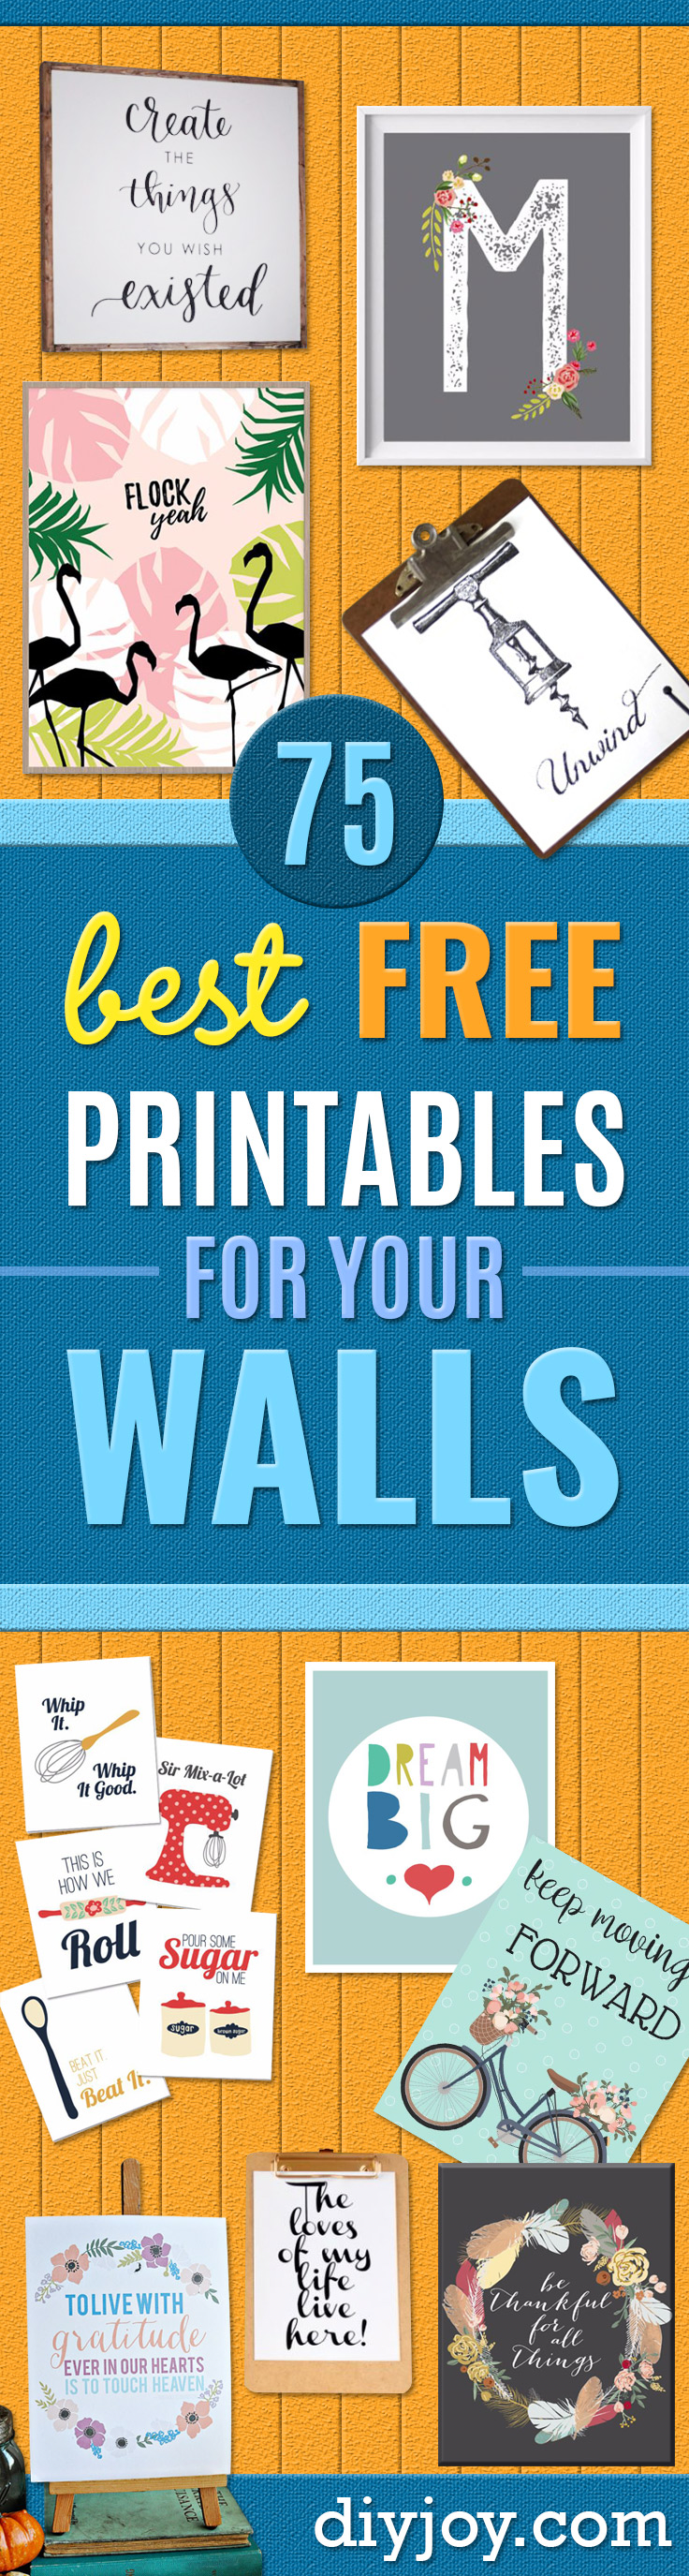 Best Free Printables For Your Walls - Free Printable Ideas for DIY Wall Art Home and Bedroom Decor - Quotes for Bedroom, Living Room and Kitchens, Bathroom Pictures - Free Printable Art for Kids